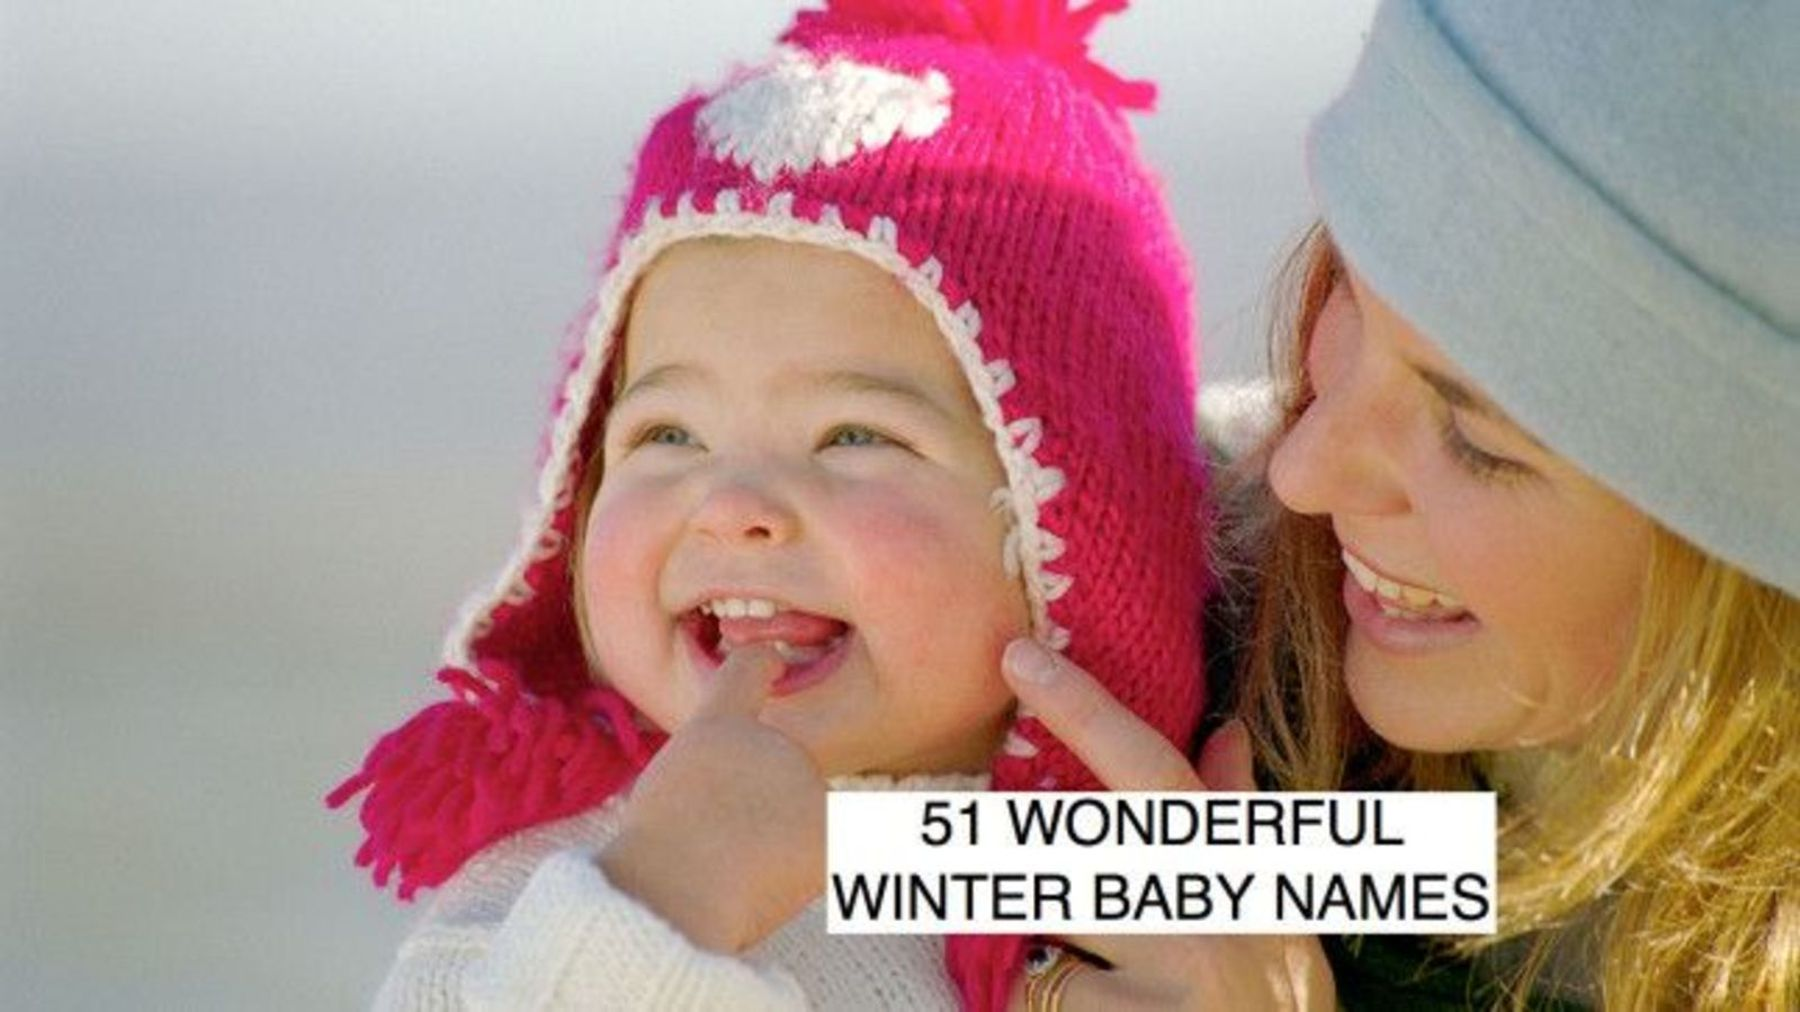 Winter baby names: 51 beautiful wintry baby names - and